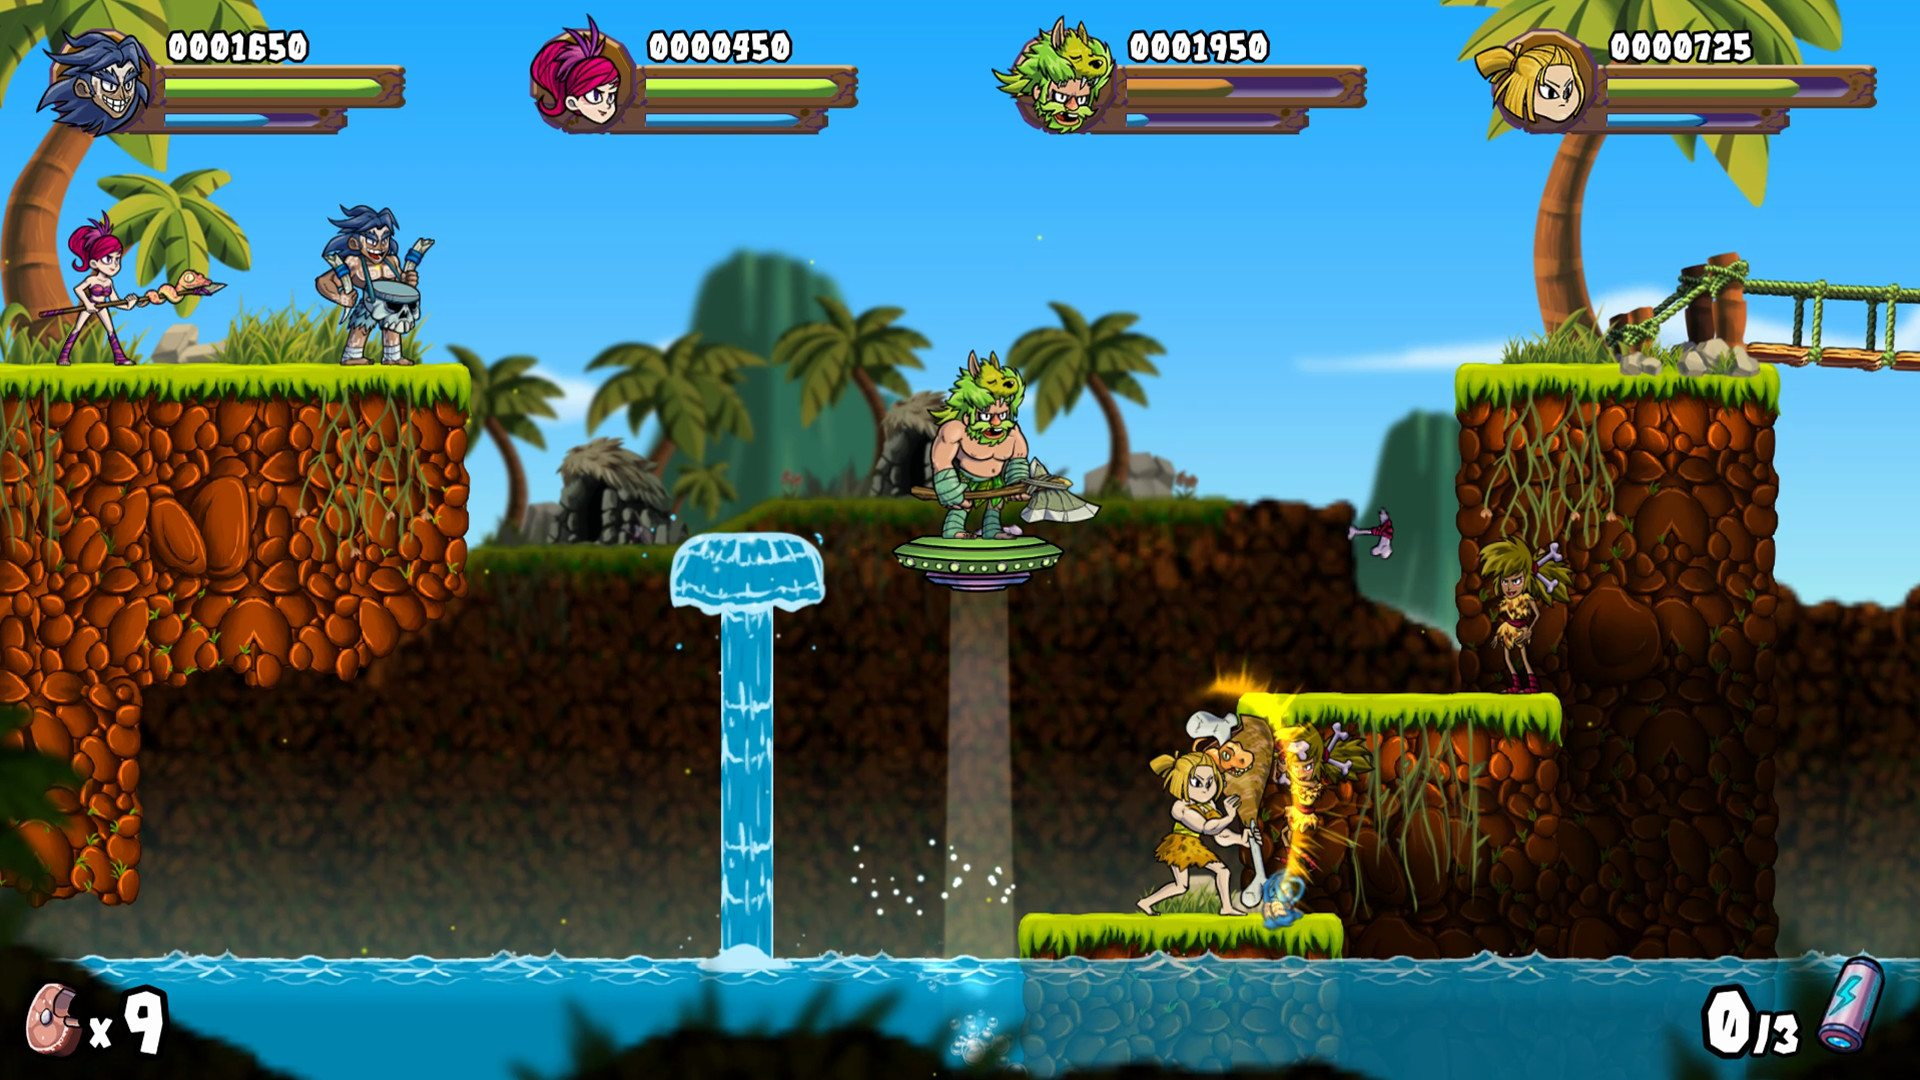 Caveman Warriors platform